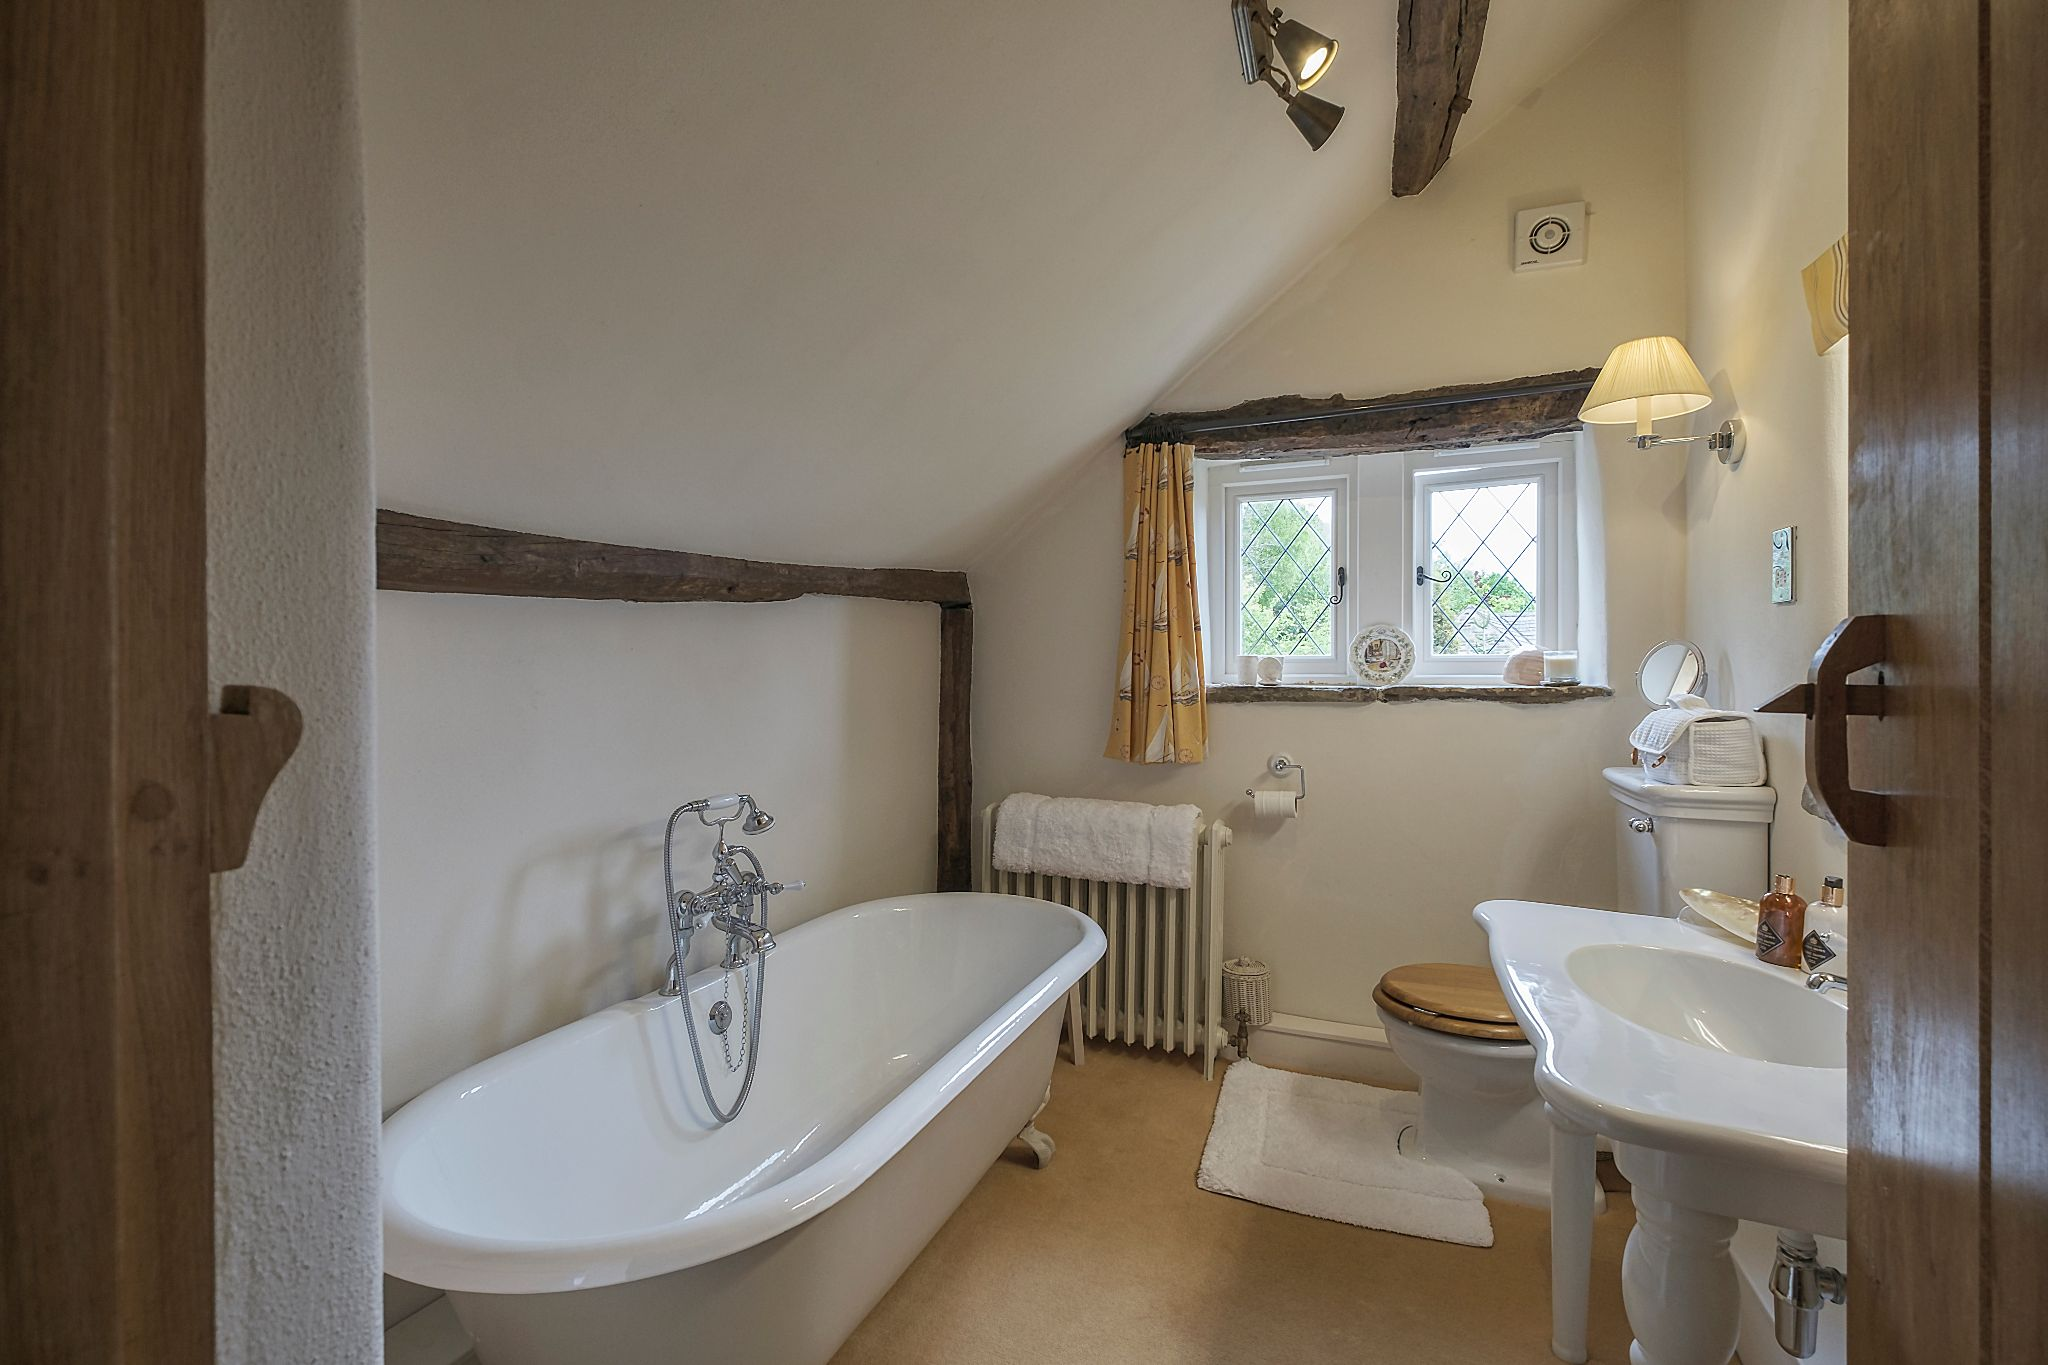 Farm House For Sale in Halifax - Bathroom.